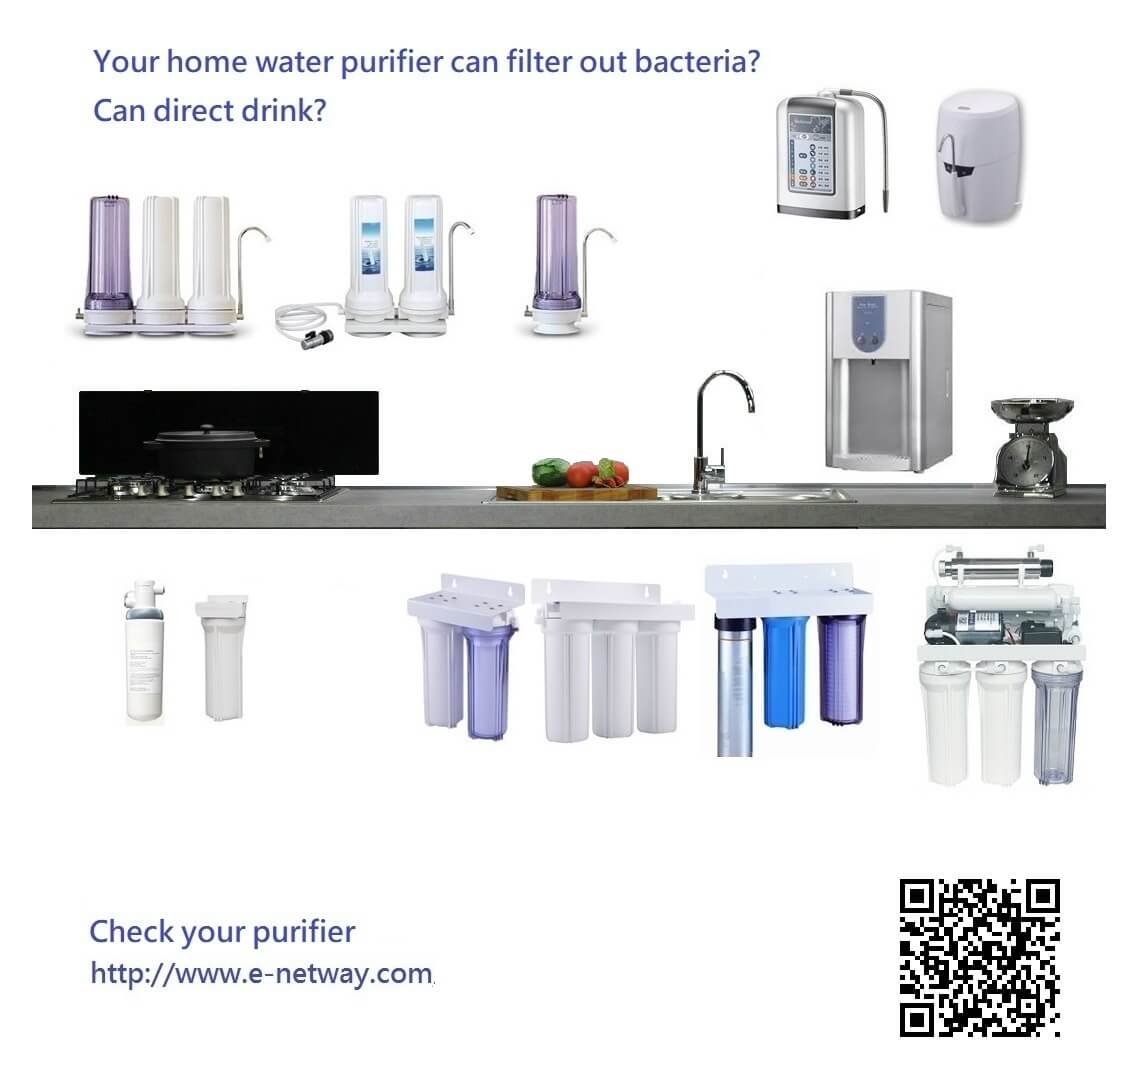 Use ultrafiltration membrane water filter upgrade to sterile pur water filtration system.